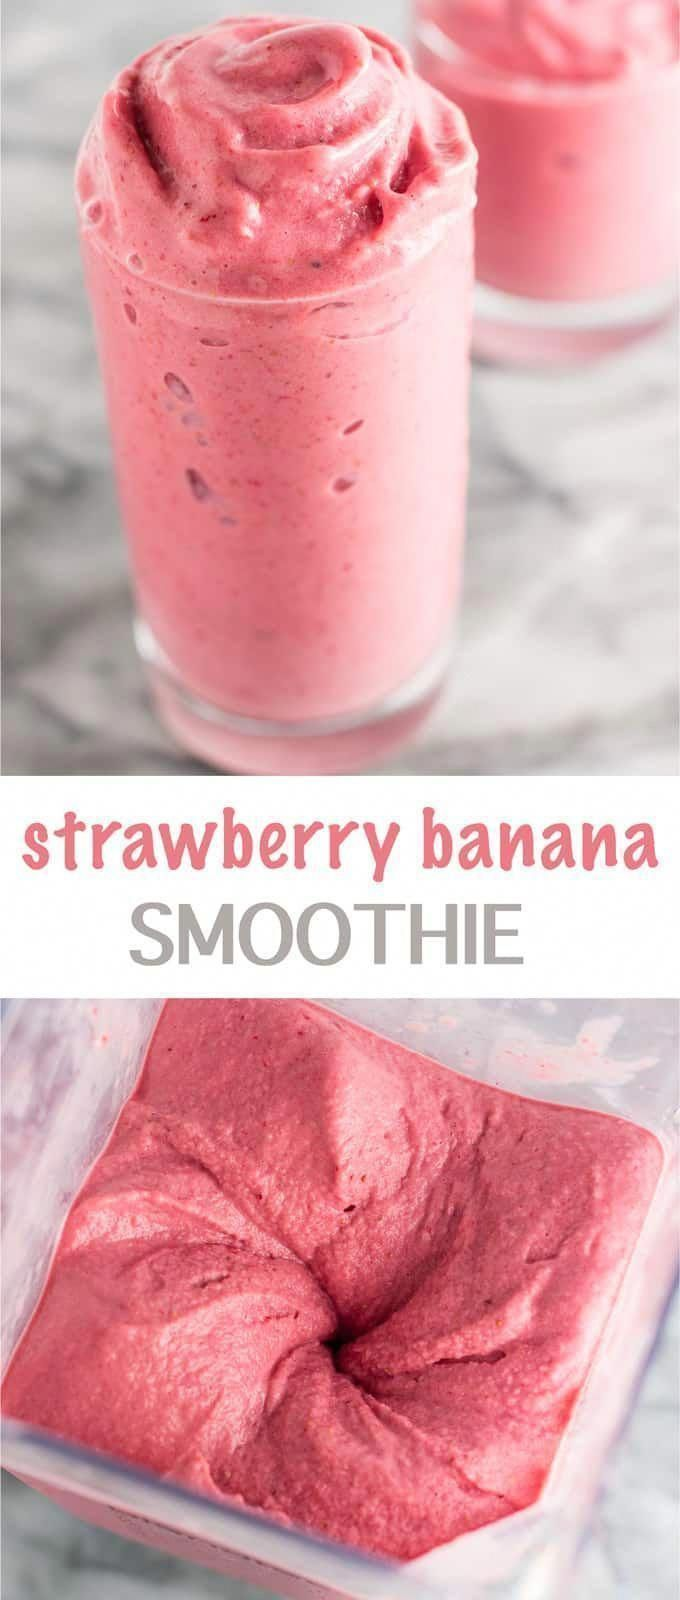 Healthy strawberry banana smoothie recipe with just 3 ingredients! This seriously tastes like ice cream - so good! #strawberrybananasmoothie #healthy #healthysmoothie #breakfast #dessert #breakfastsmoothie #healthystrawberrybananasmoothie Healthy strawberry banana smoothie recipe with just 3 ingredients! This seriously tastes like ice cream - so good! #strawberrybananasmoothie #healthy #healthysmoothie #breakfast #dessert #breakfastsmoothie #healthystrawberrybananasmoothie